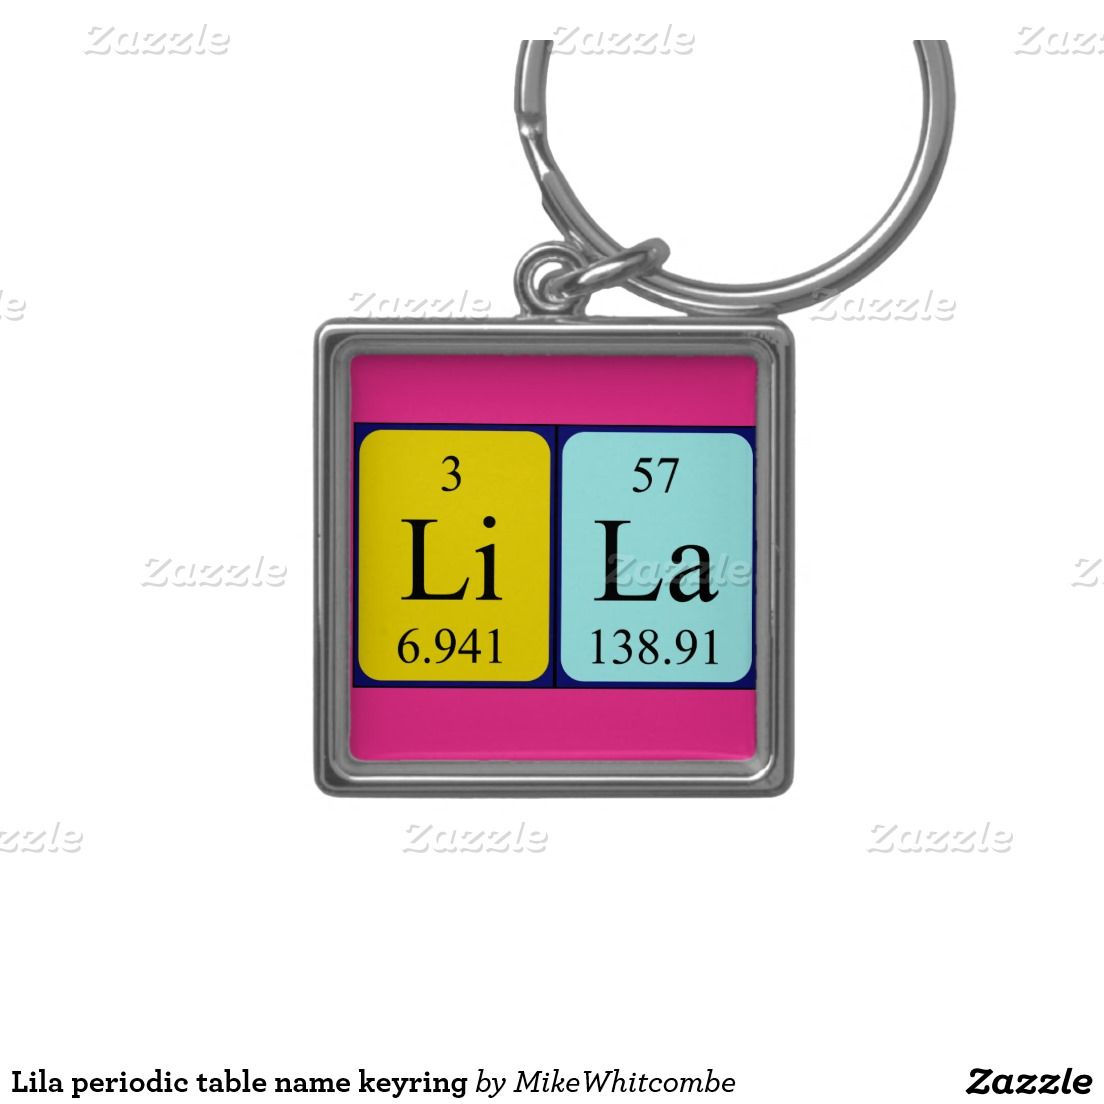 Lila periodic table name keyring pinterest periodic table and lila periodic table name keyring key chains urtaz Image collections